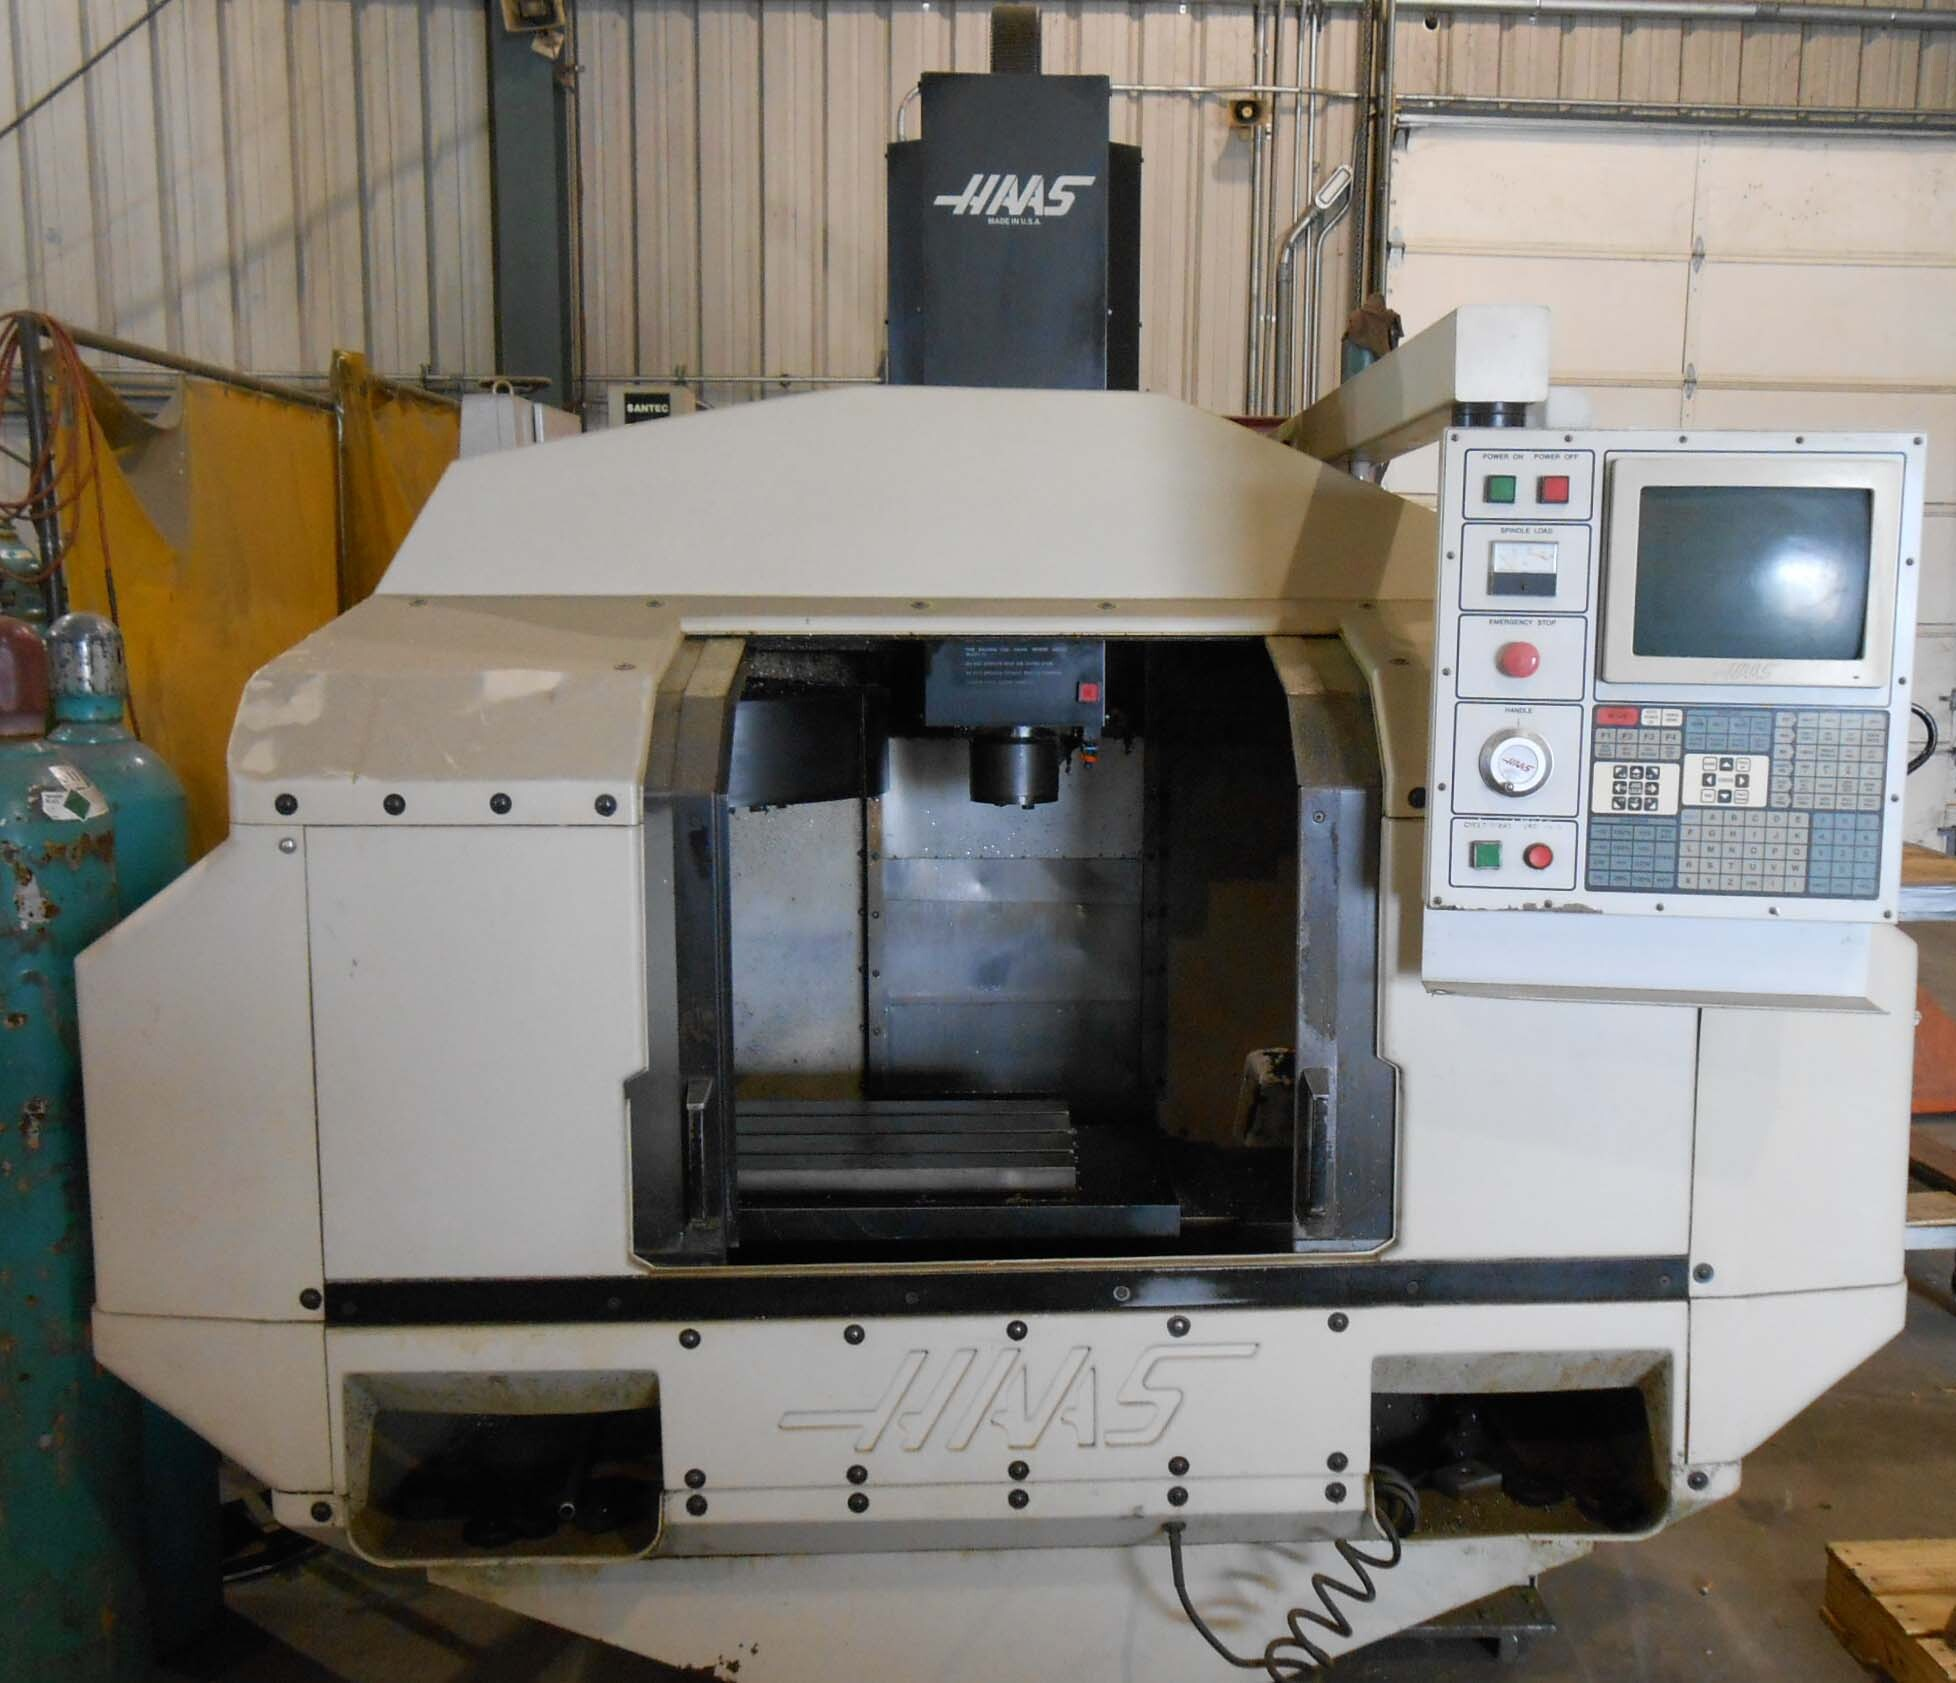 HAAS VF2 Used For Sale Price #9078186, 1992 > Buy From CAE